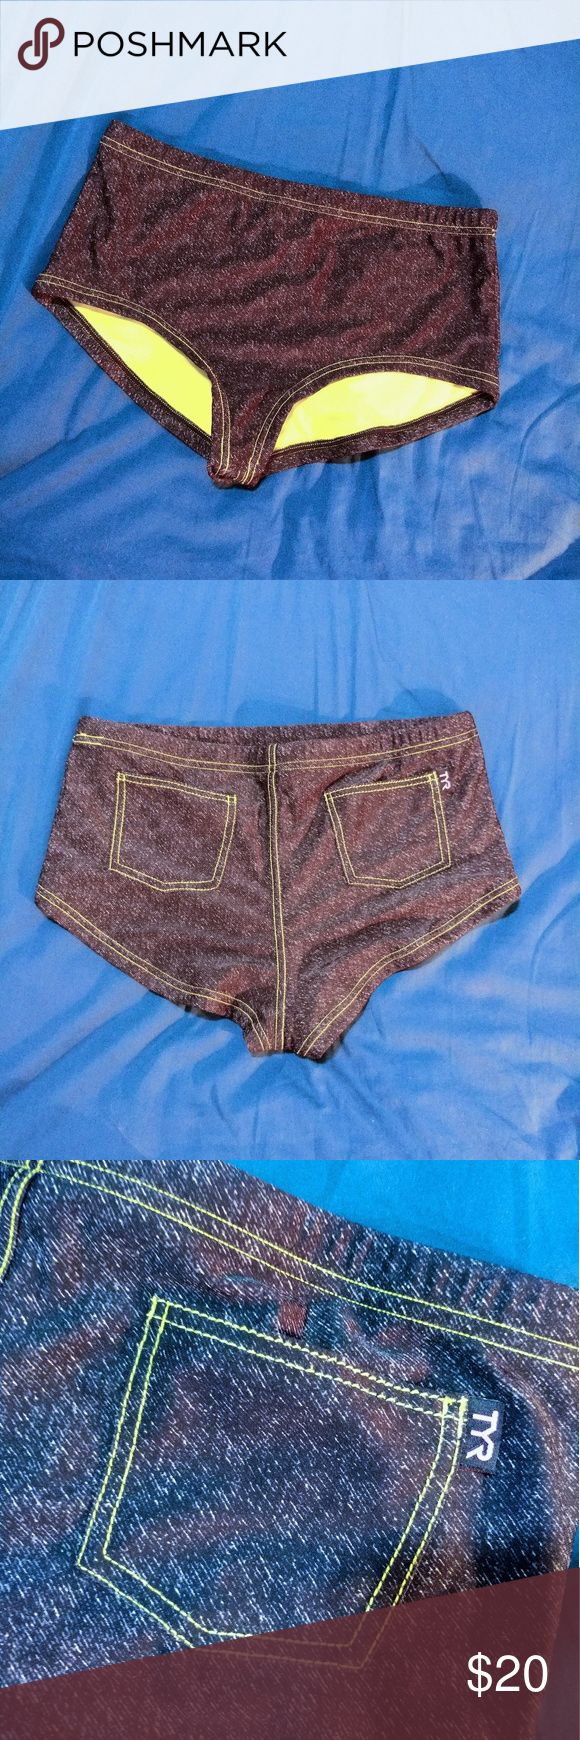 Denim look Tyr active swim bottoms XL *Tyr brand.  *excellent condition *size juniors XL *high waisted, boy shorts swim bikini bottoms, super cute *black denim look, but is swimsuit material *fluorescent yellow/green liner. 2 back pockets *active sports swim brand. Bottoms stay in place when you participate in beach sports  Make an offer TYR Swim Bikinis